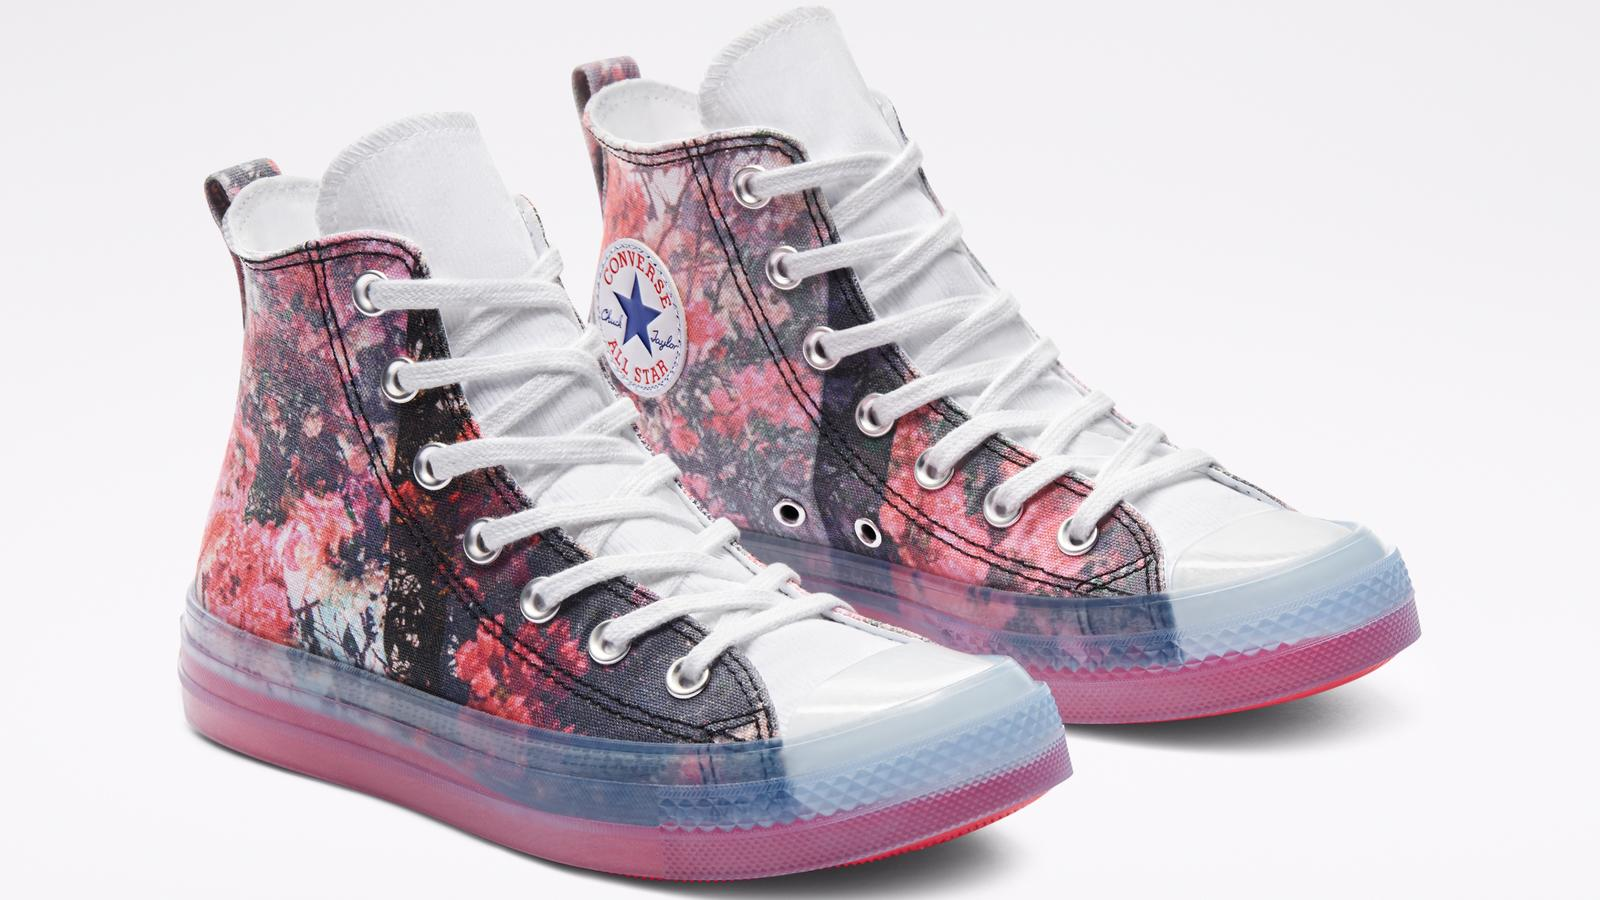 Converse x Shaniqwa Jarvis Chuck Taylor All Star CX and Apparel 3